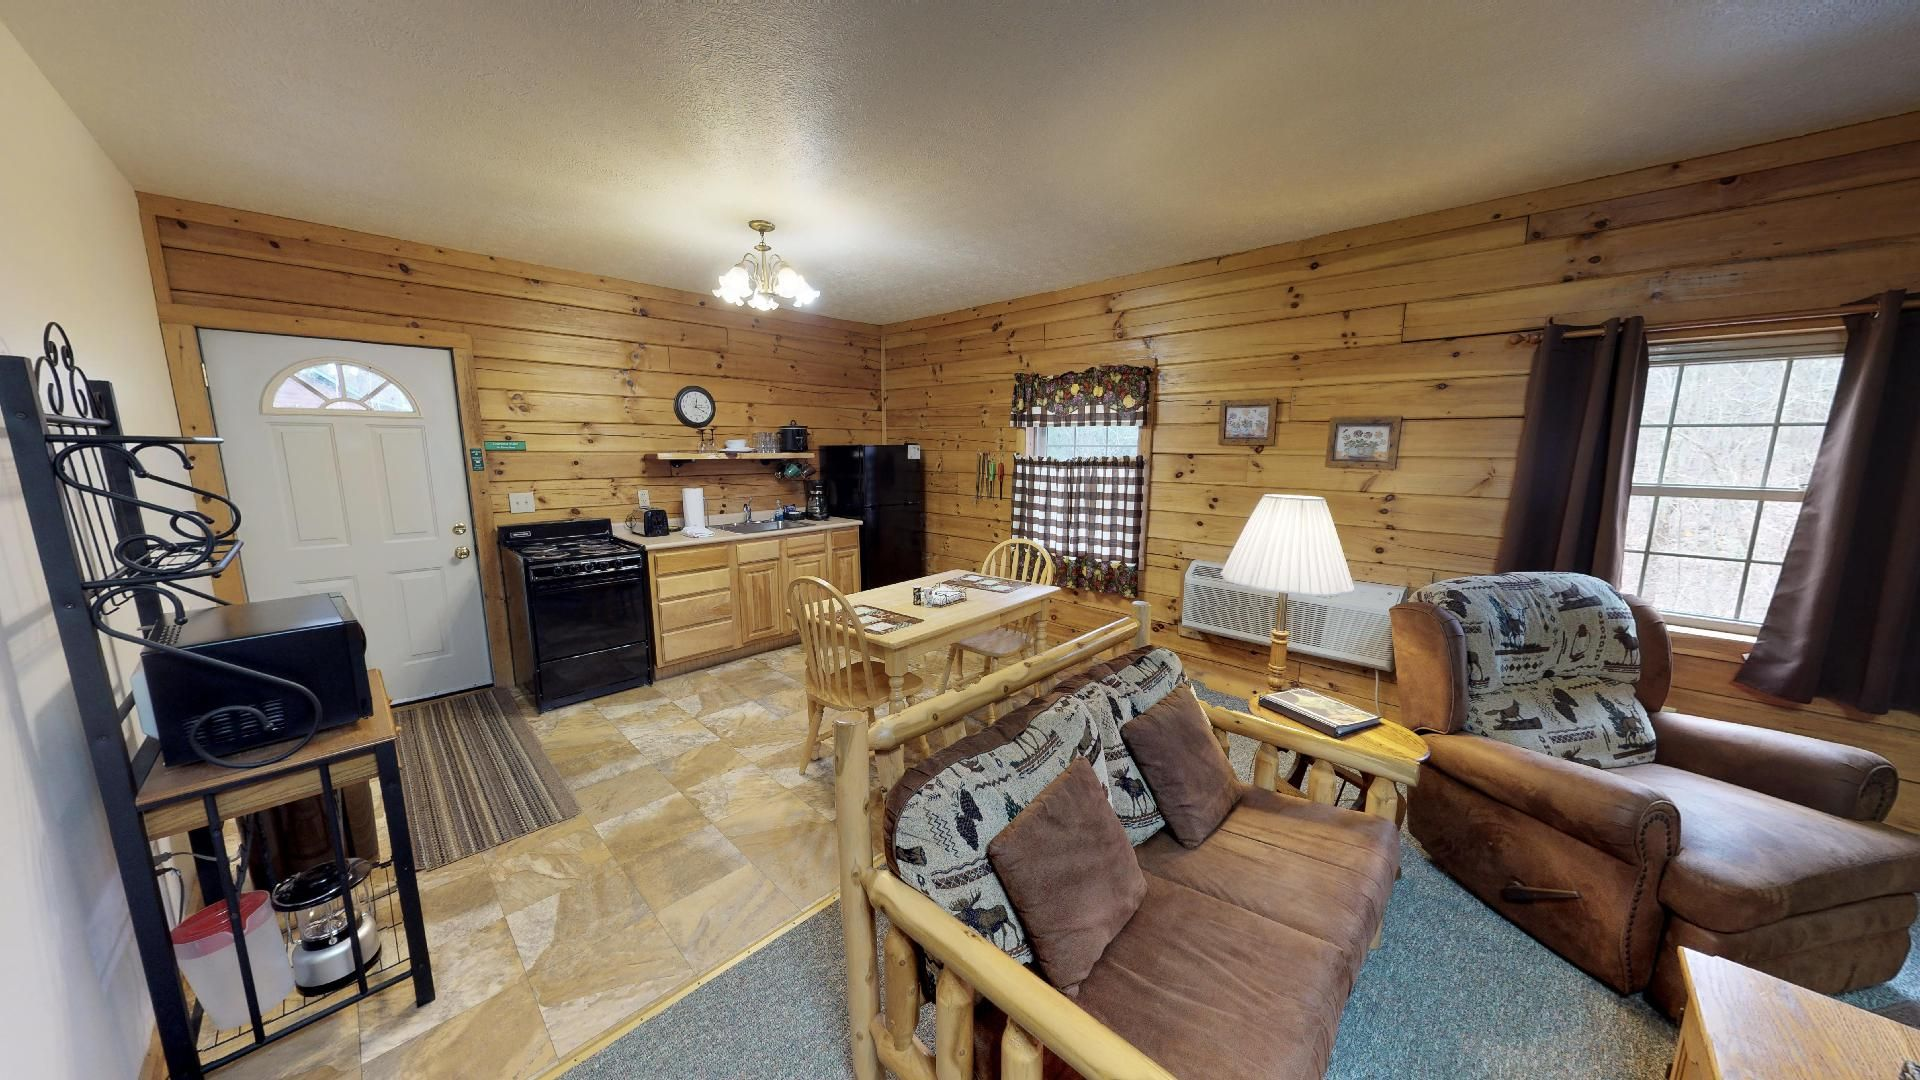 Briarwood Couples Cabin - Living room into kitchen.